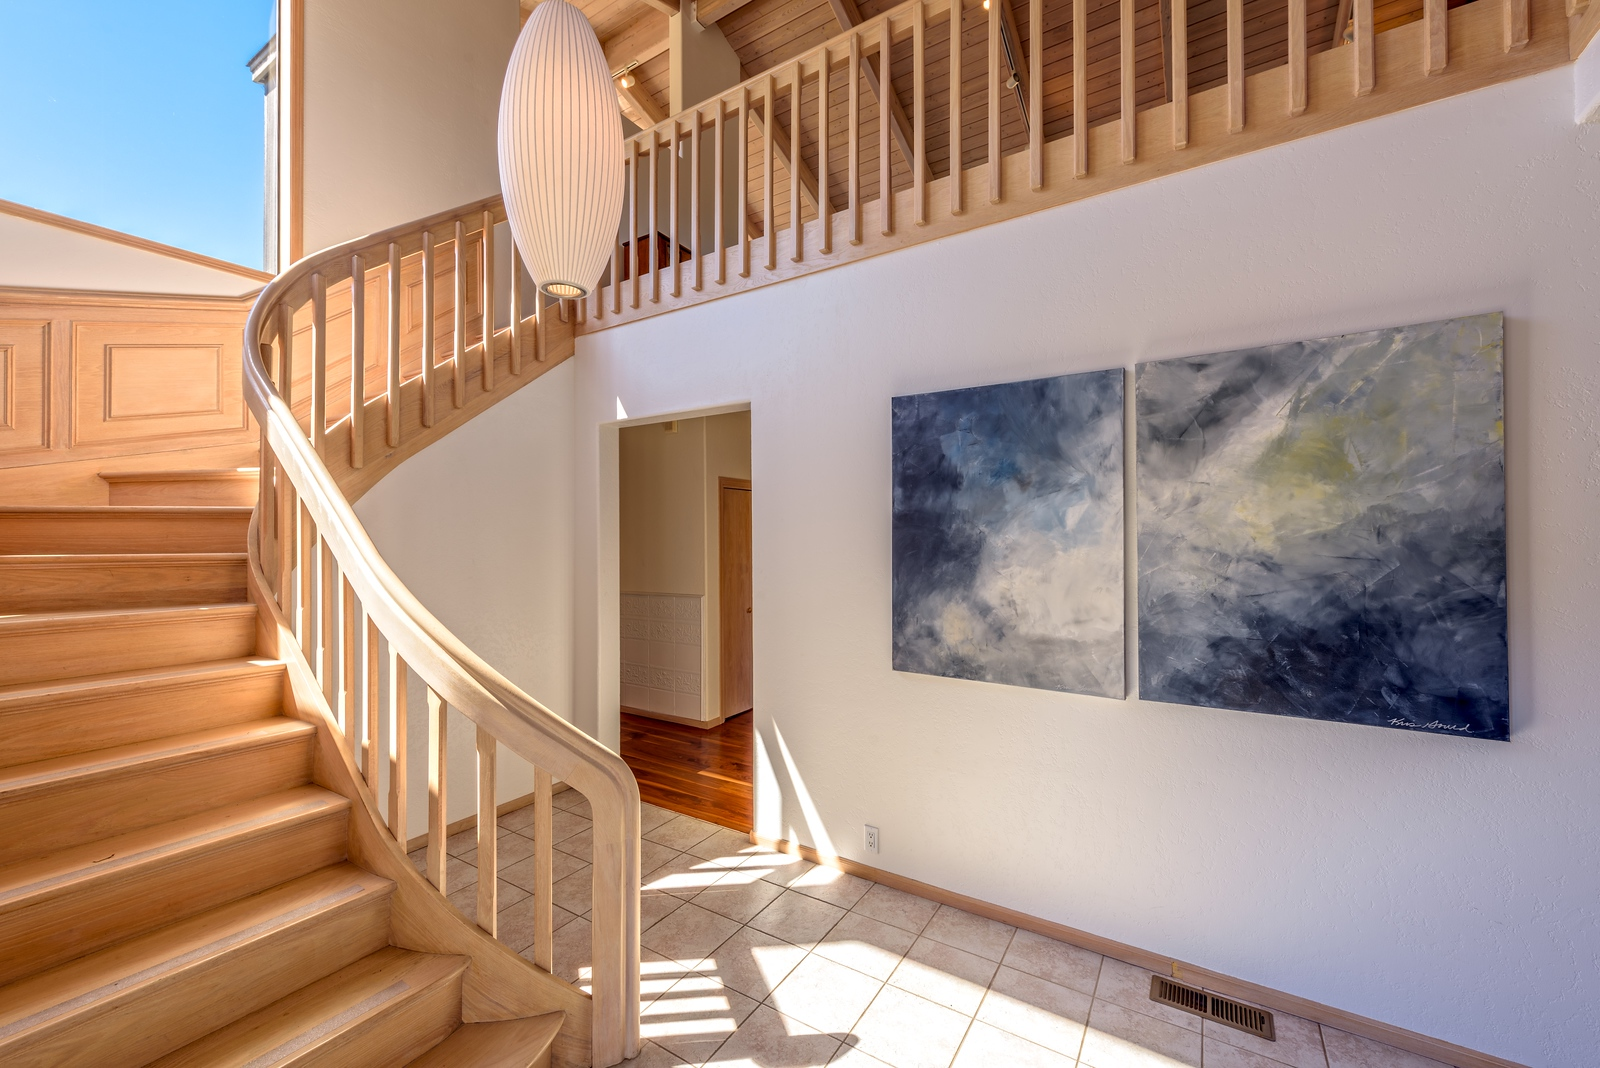 Staircase up to Living Room